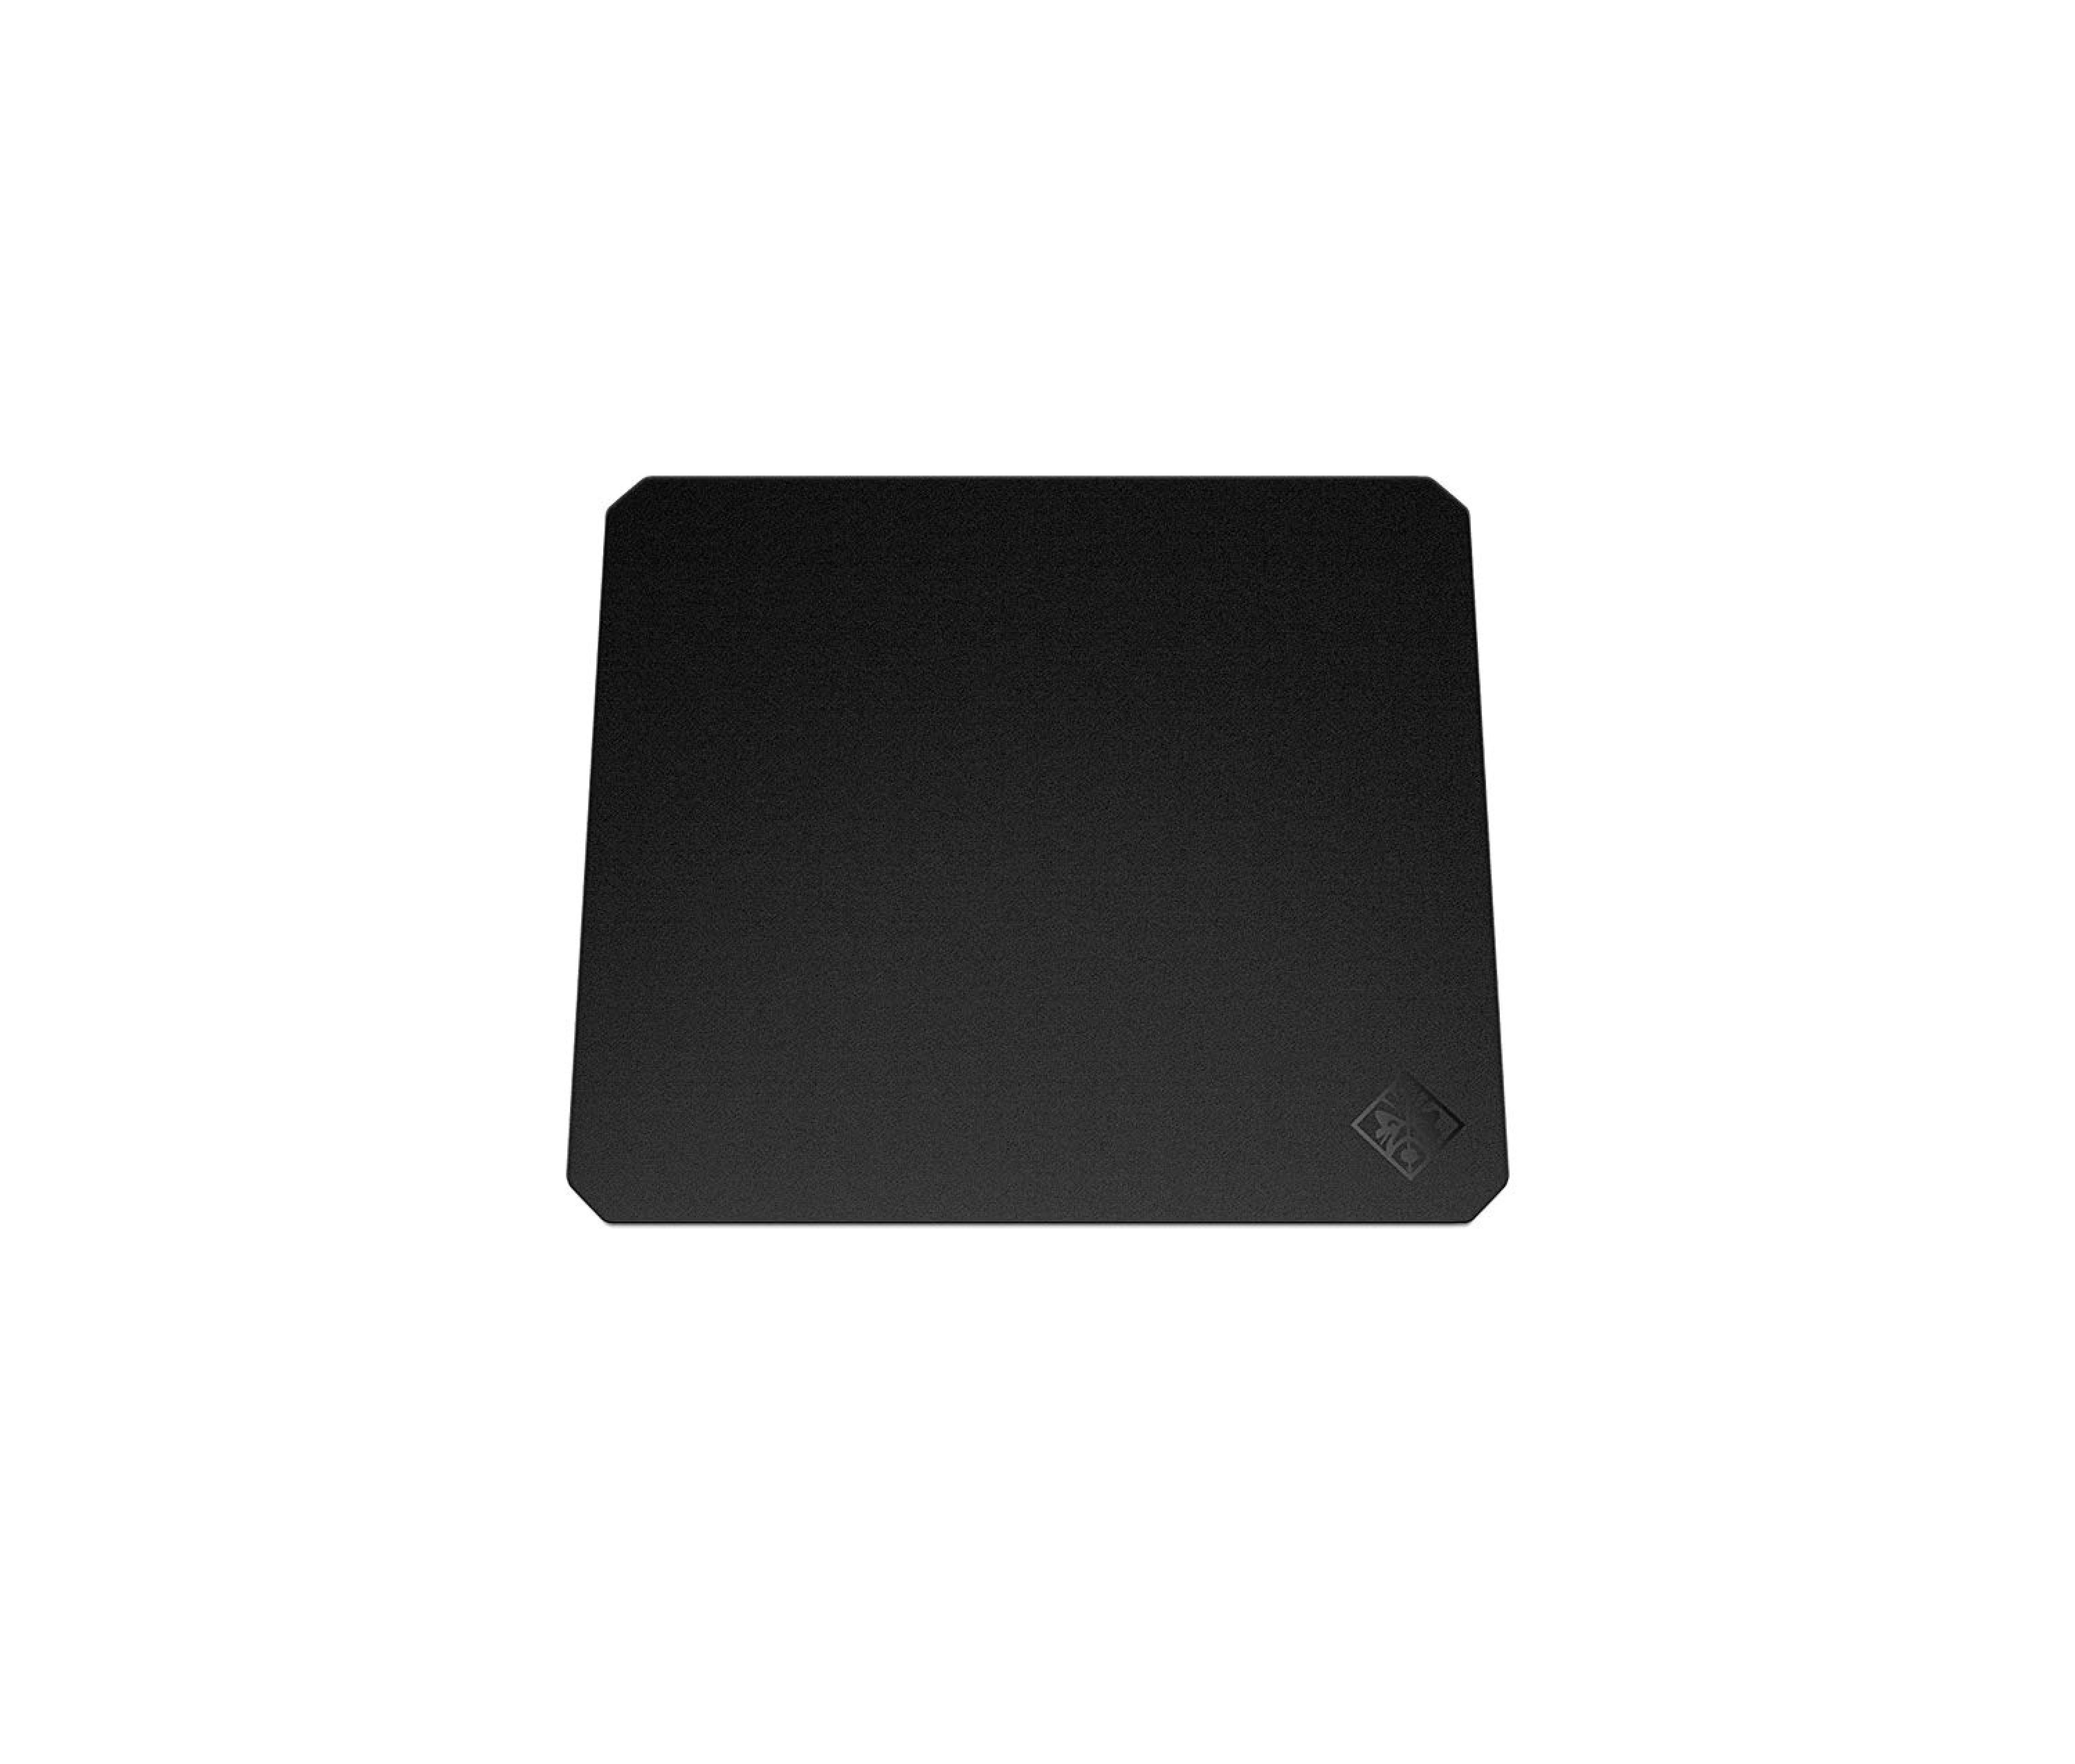 HP OMEN by HP Mouse Pad 200 Europe »Konsistente Textur. Optimale Leistung«